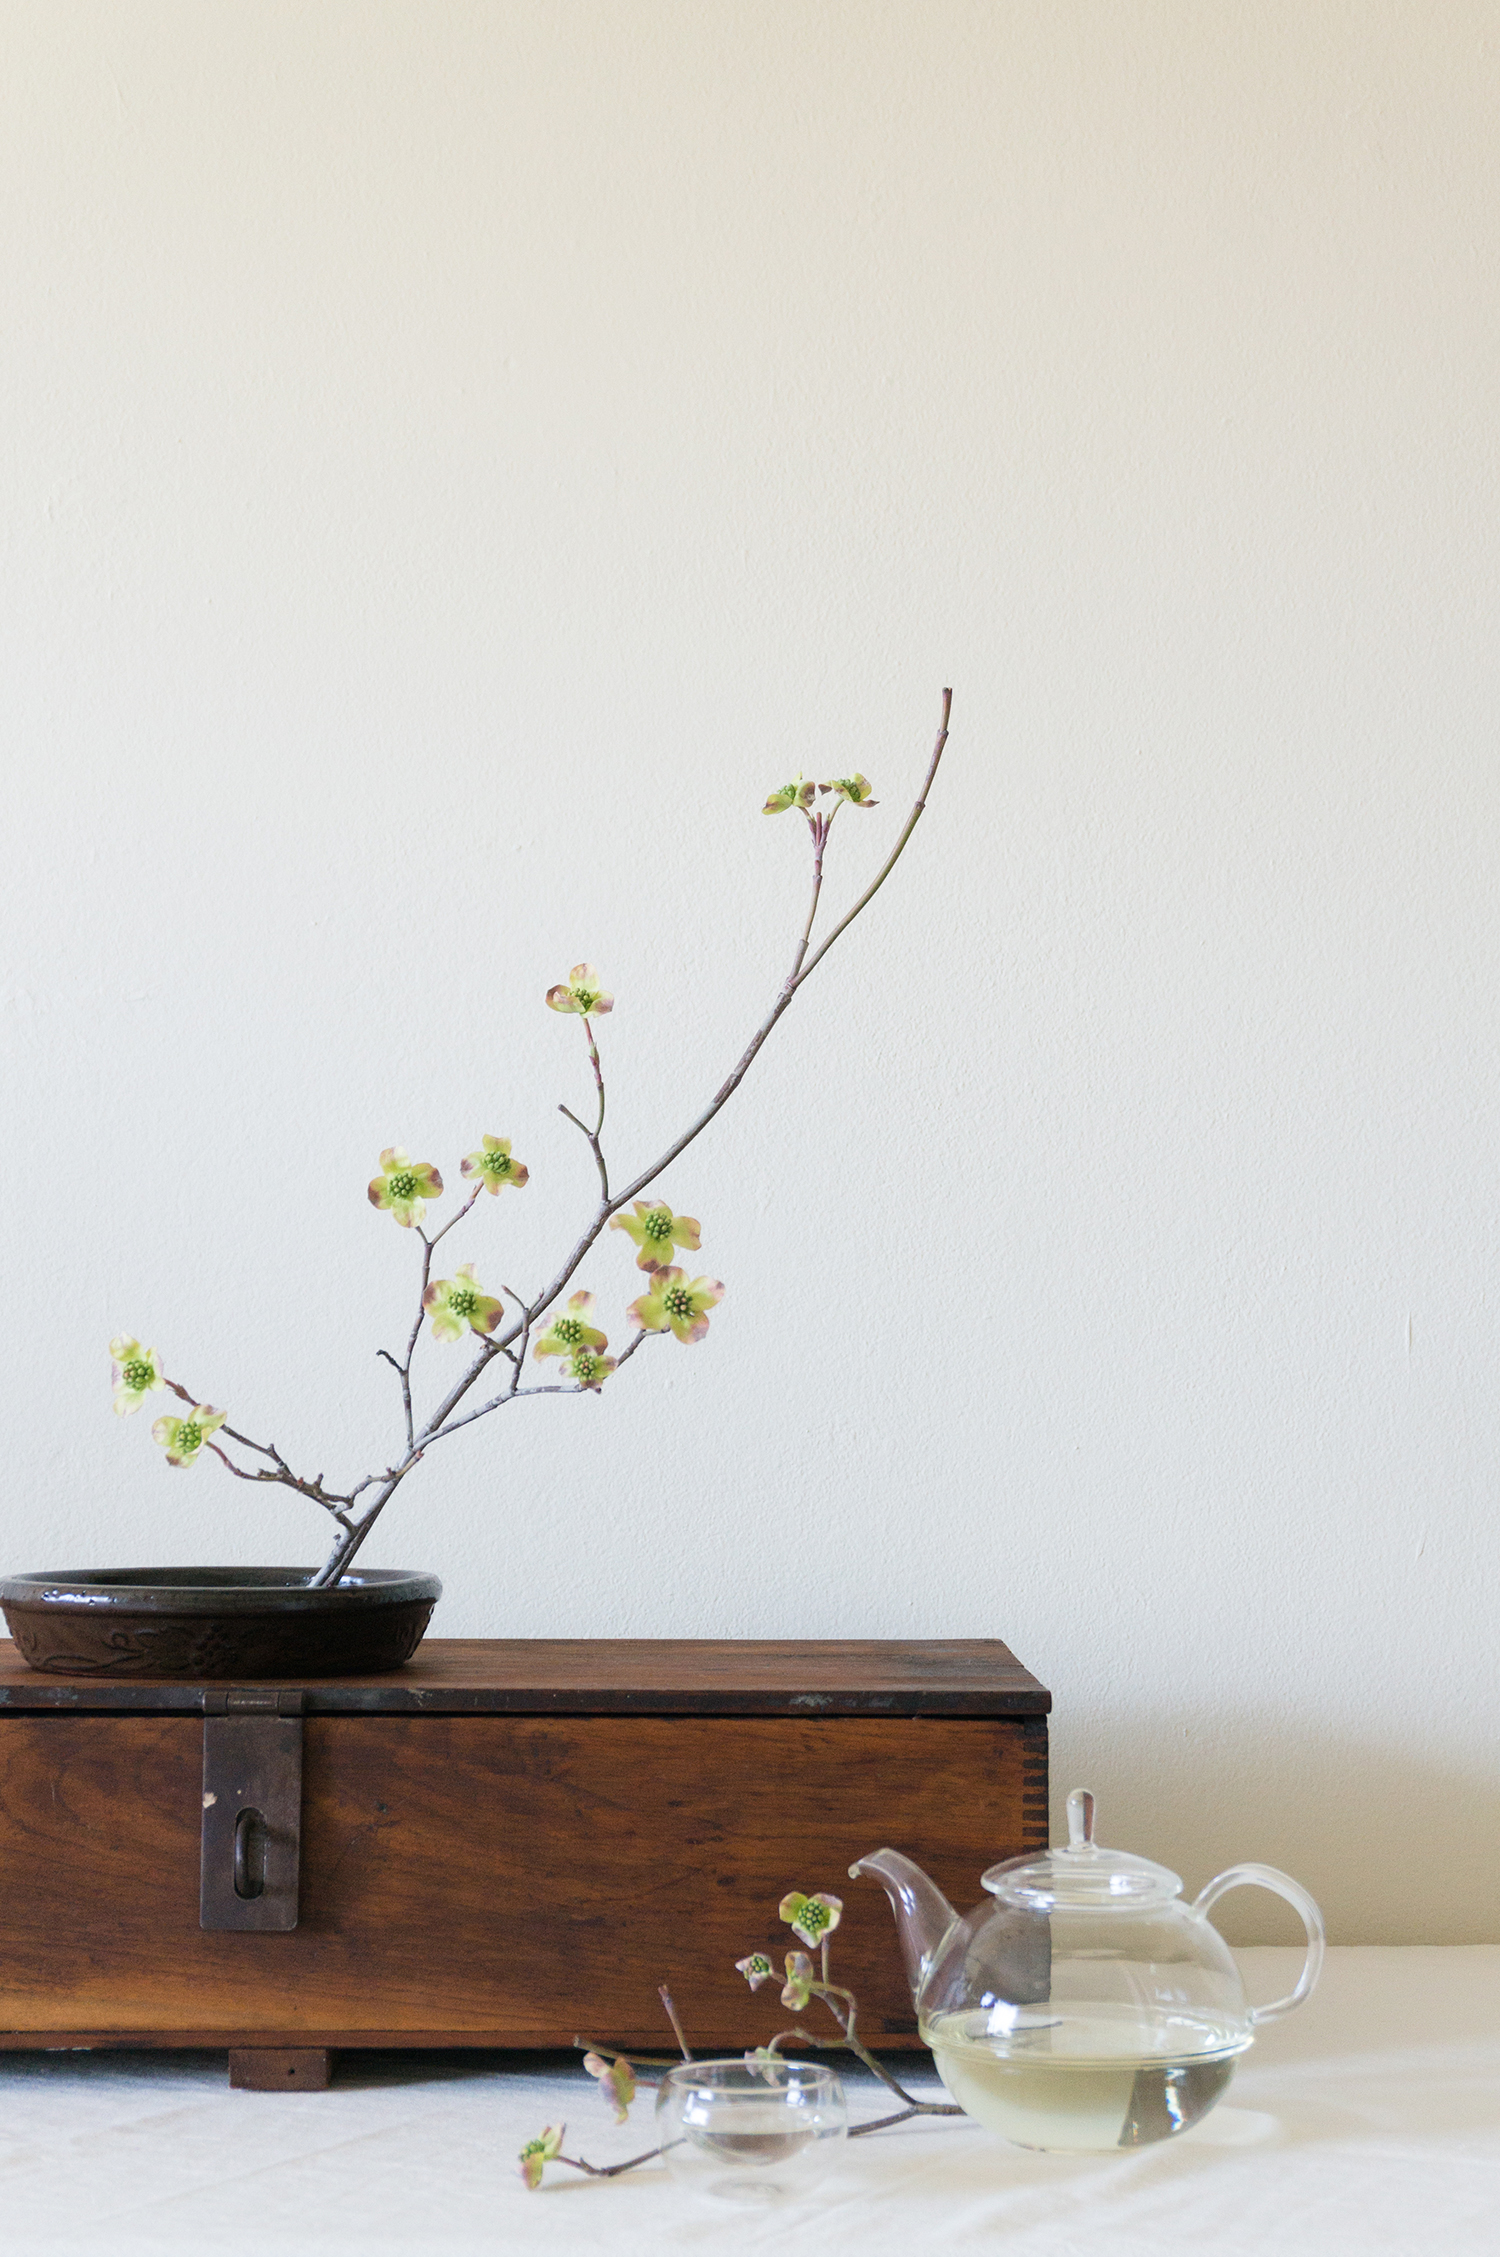 - bough + twig is a floral styling studio founded by Clair Han and Mido Lee. We design florals for spaces, weddings, and events in the San Francisco Bay Area. Our design philosophy is based on three core values:Embrace natureNature is perfect yet imperfect, symmetrical yet asymmetrical, structured yet organic. The duality of nature inspires us and draws our respect.SimplicityThe world is filled with noise and drains our senses. We strive to reduce the noise and invoke peace and harmony.Connectionbough + twig was born from the idea of a tree branch reaching out. By infusing warmth in all our work, we seek to touch the viewer and invoke emotion and thought.